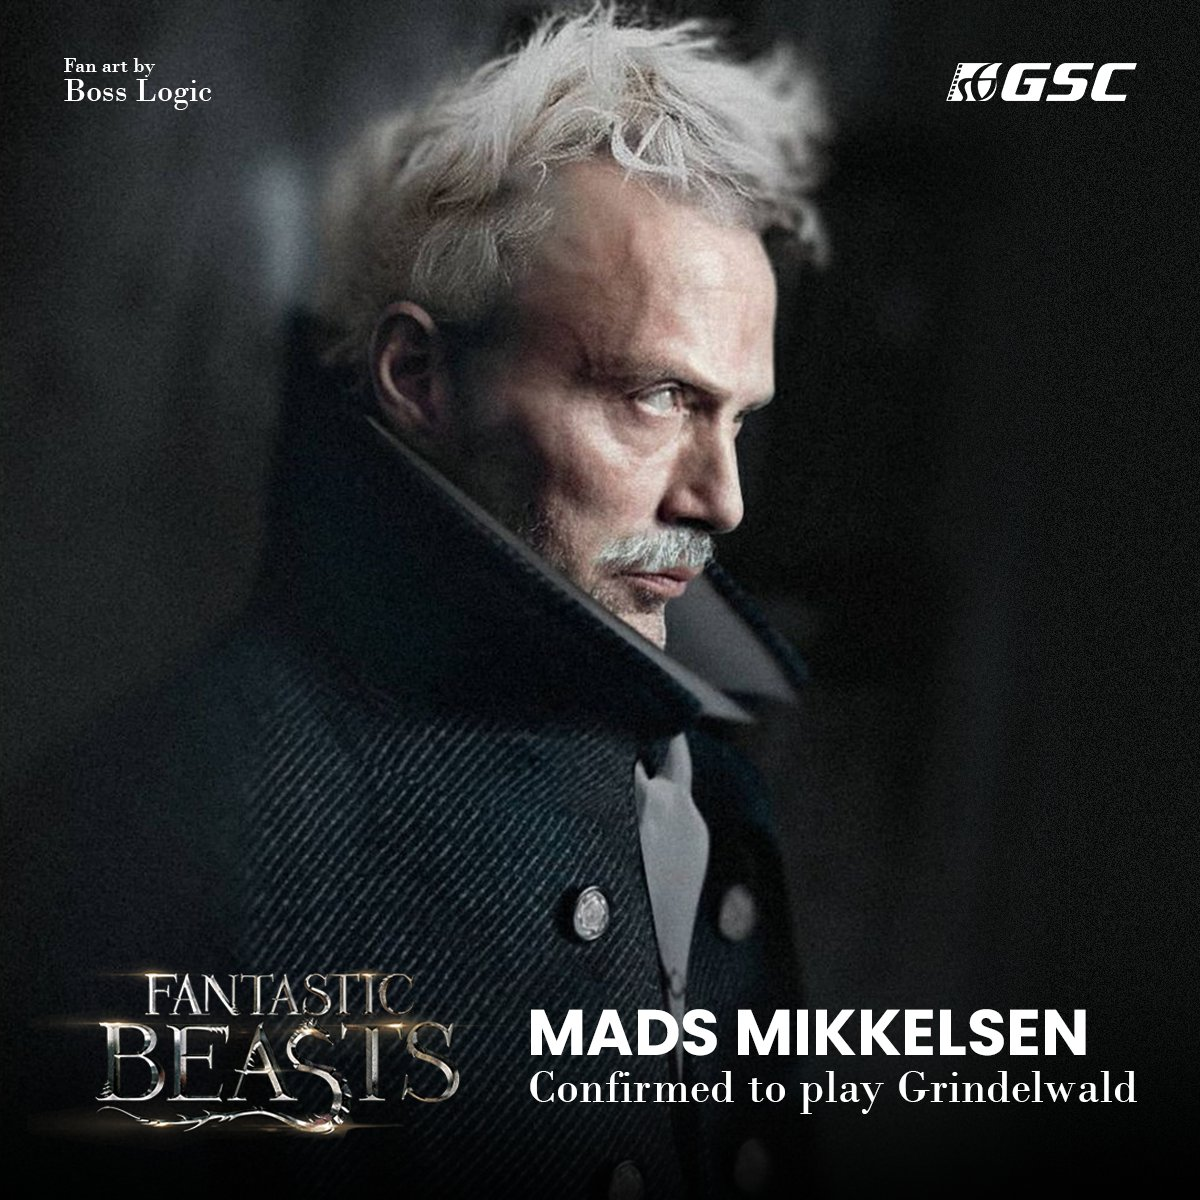 It's official - Mads Mikkelsen has been confirmed to replace Johnny Depp to play Gellert Grindelwald in the upcoming #FantasticBeasts sequel.  Fantastic Beasts 3 is currently in production in London, and will open in theaters July 2022.  Awesome Artwork by @Bosslogic https://t.co/RxCrvDEWWq